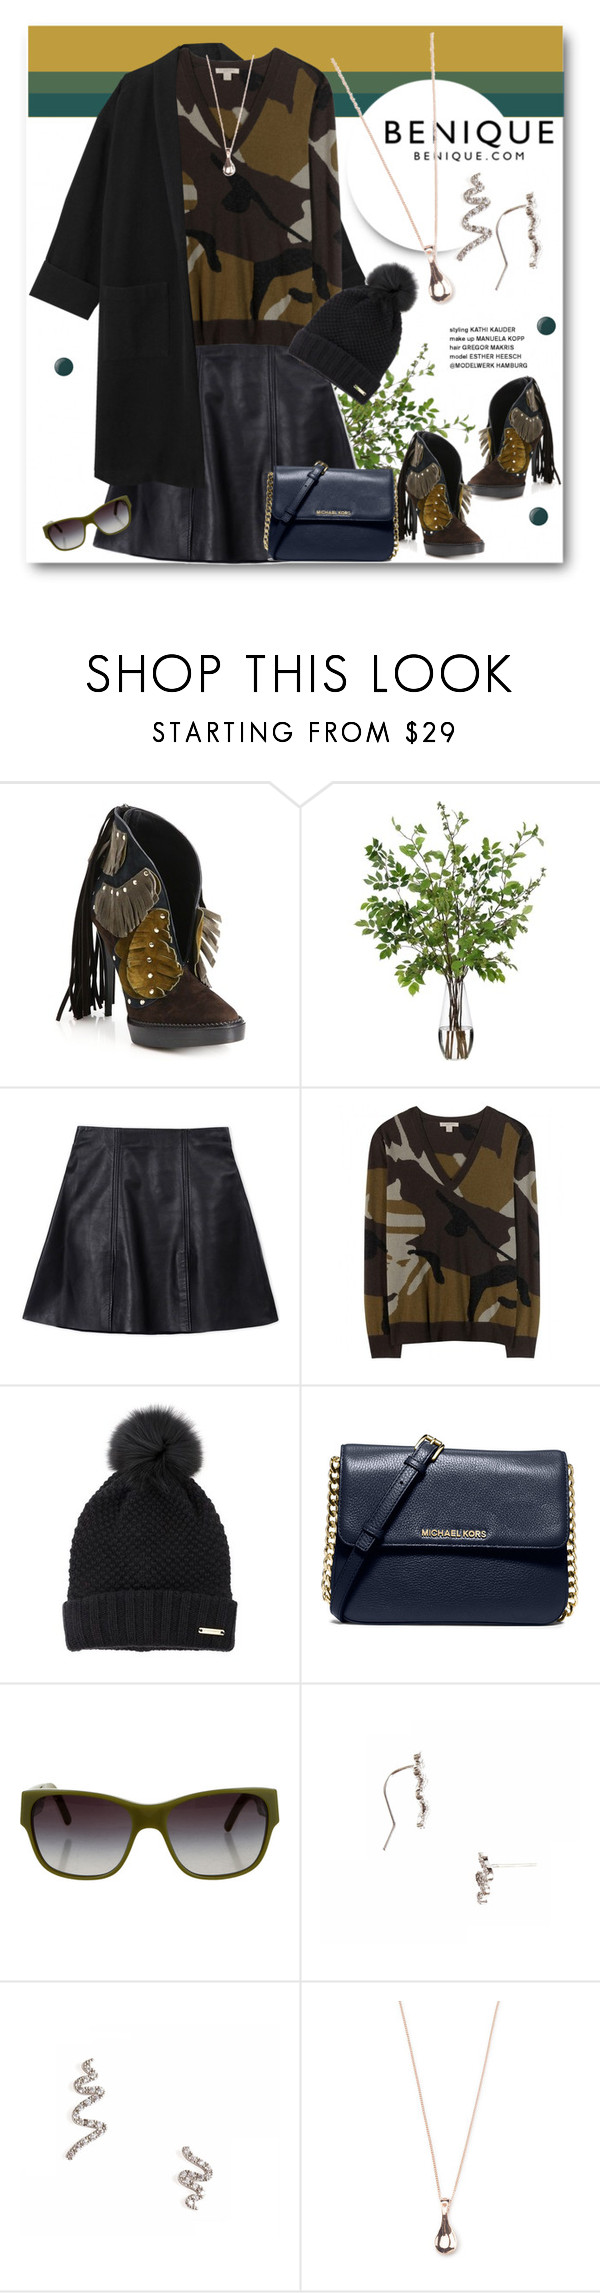 """BENIQUE"" by svijetlana ❤ liked on Polyvore featuring Burberry, Diane James, Acne Studios, MICHAEL Michael Kors, Essie and benique"